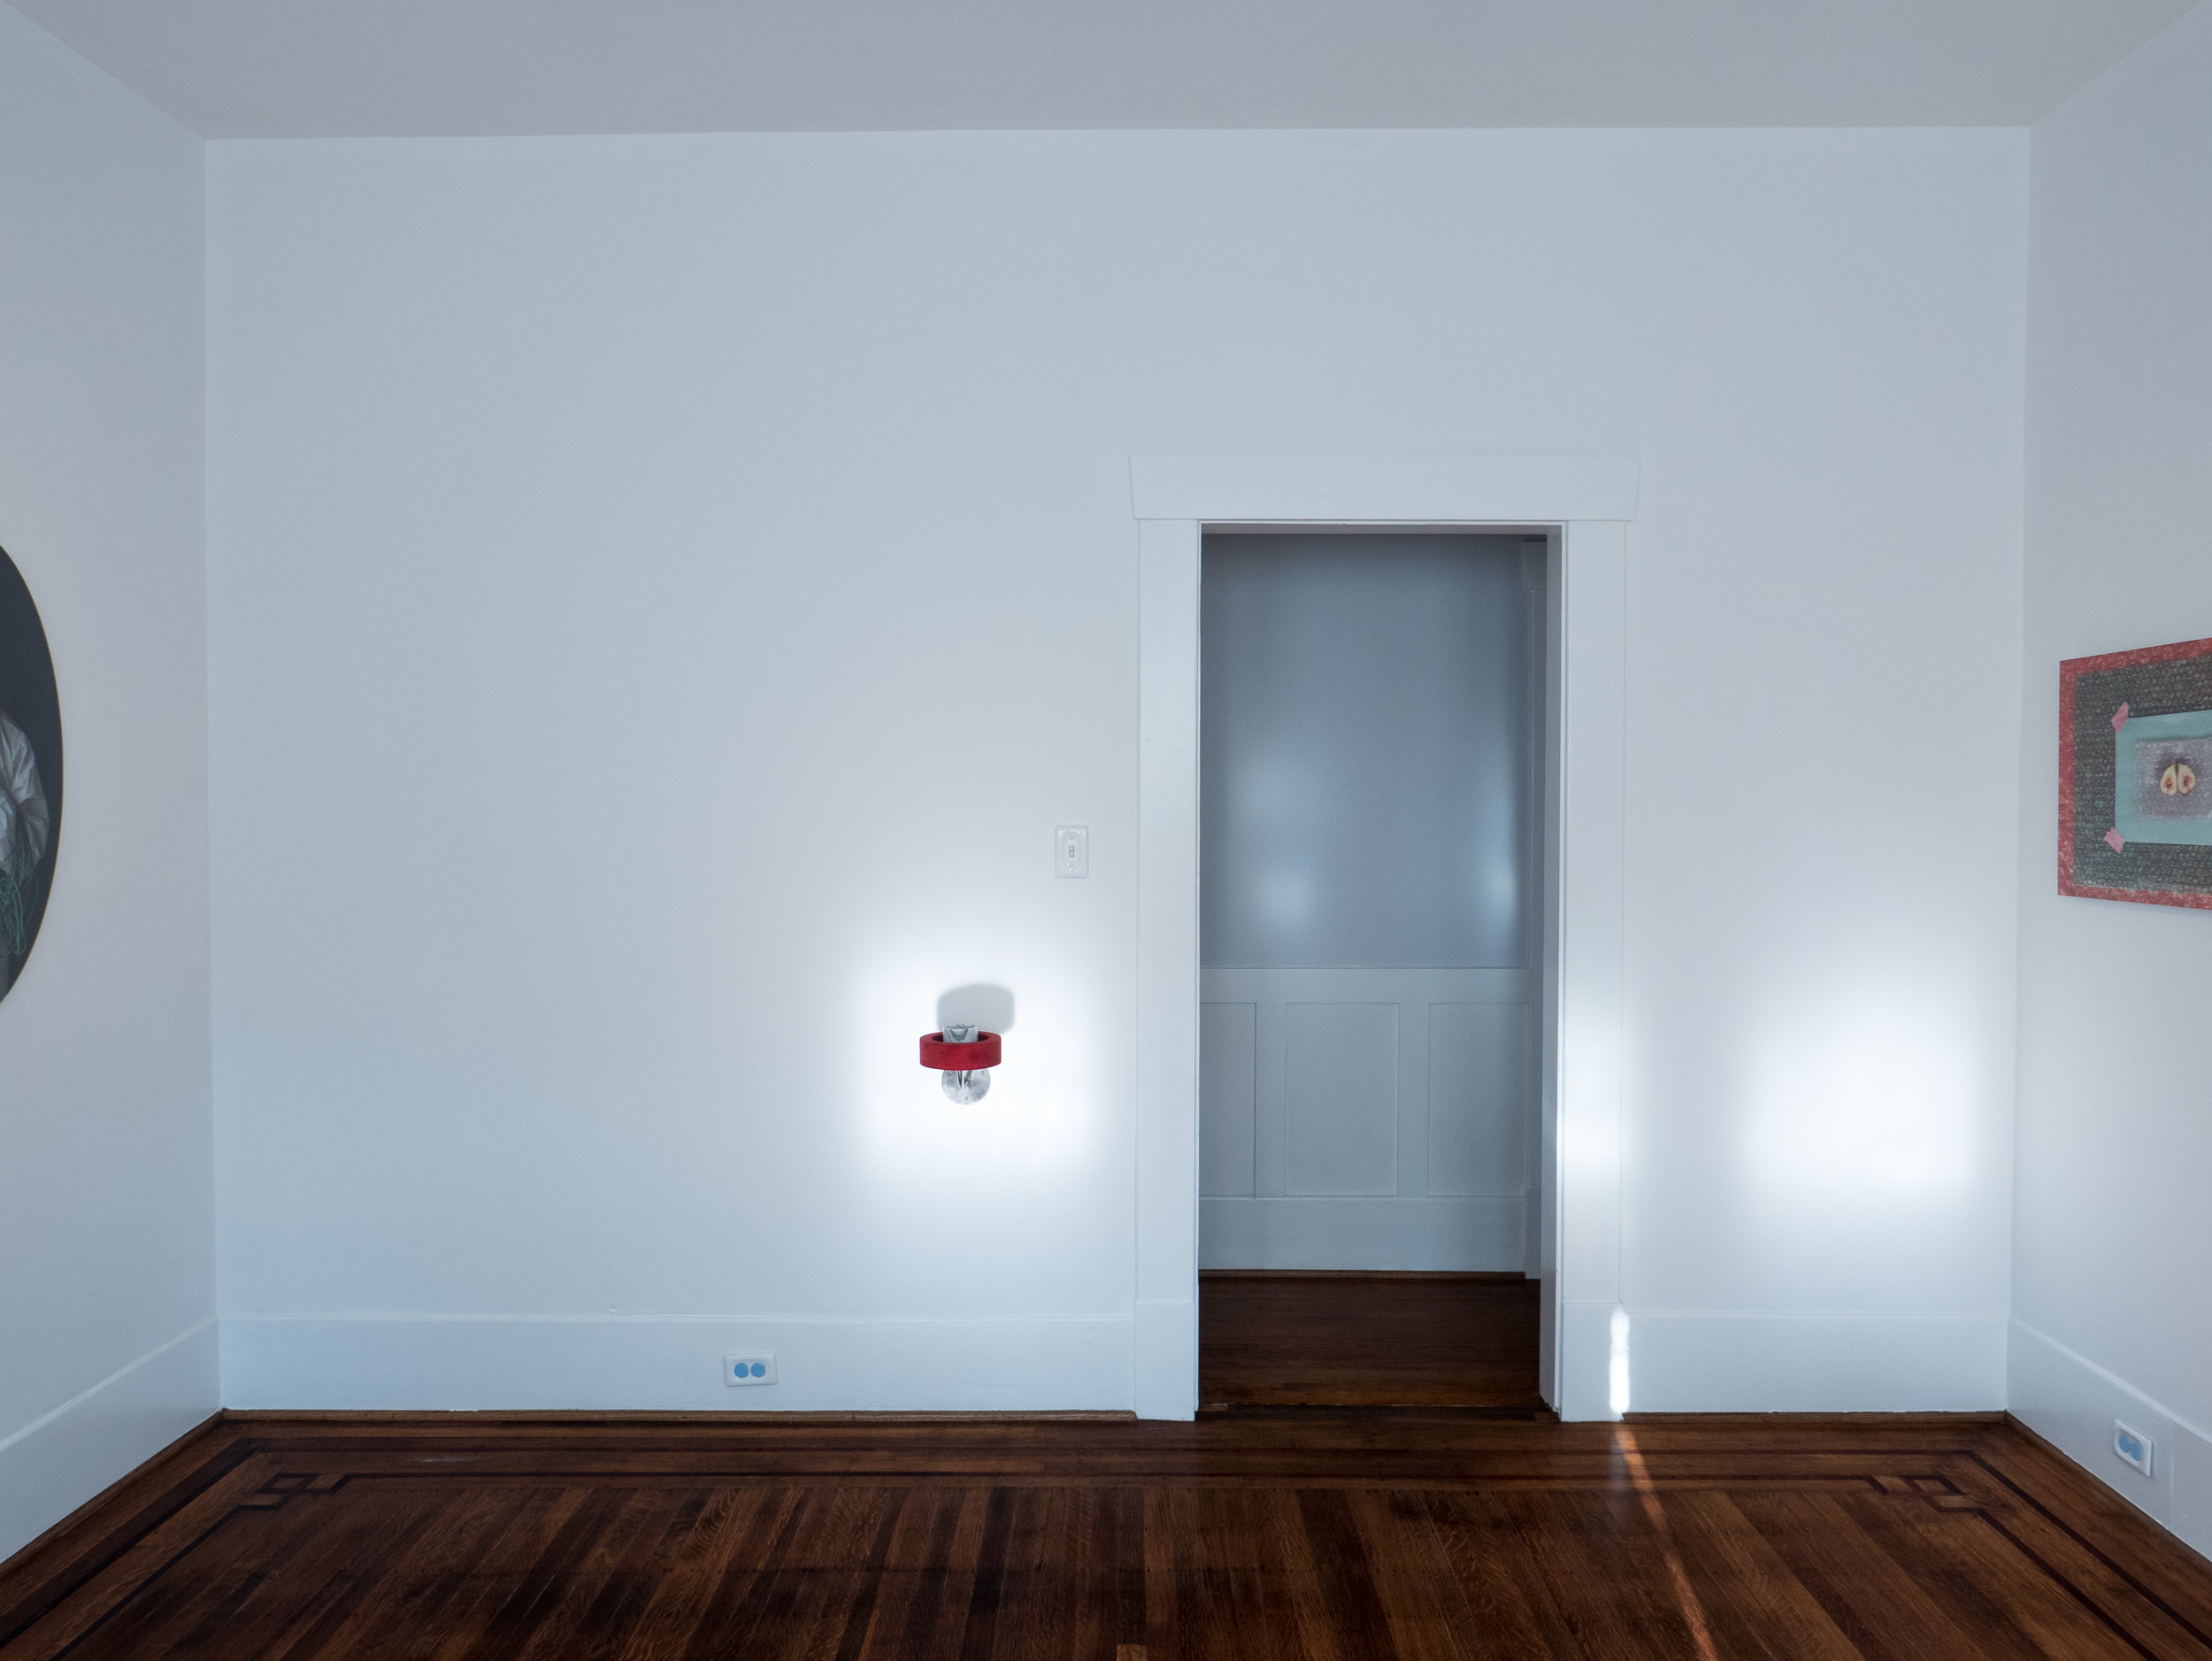 smother Installation Images (15 of 24).jpg